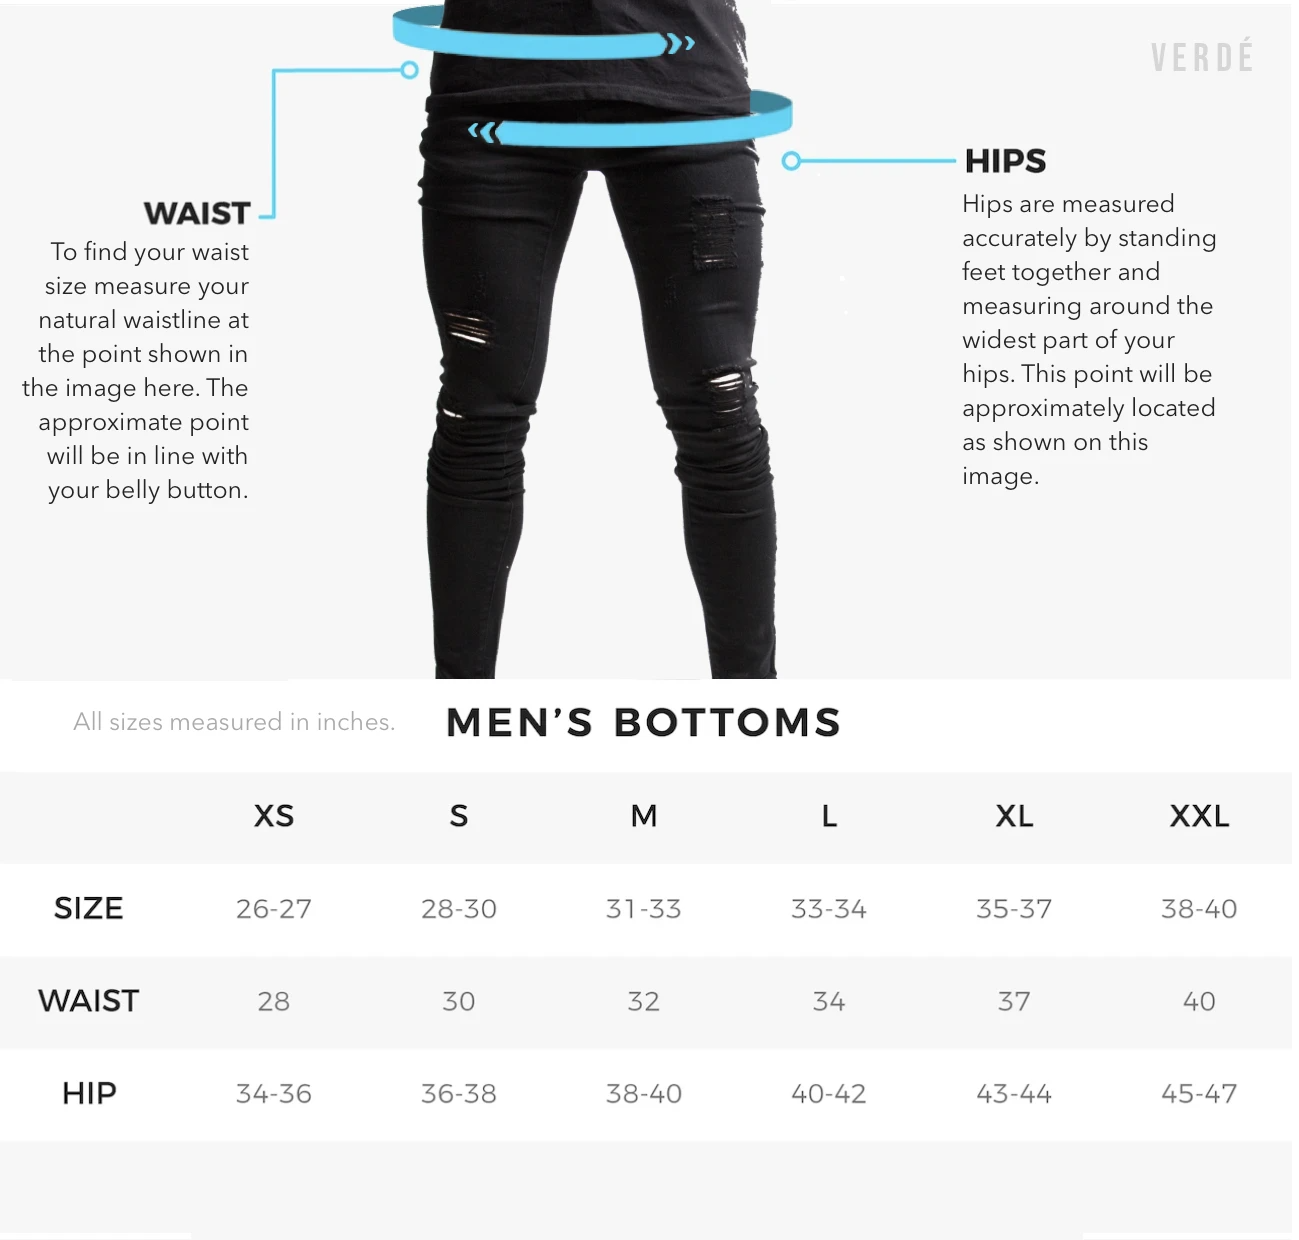 files/size_charts_PANTS_13849511-73c0-4e76-83f2-fb8a98be5458.png